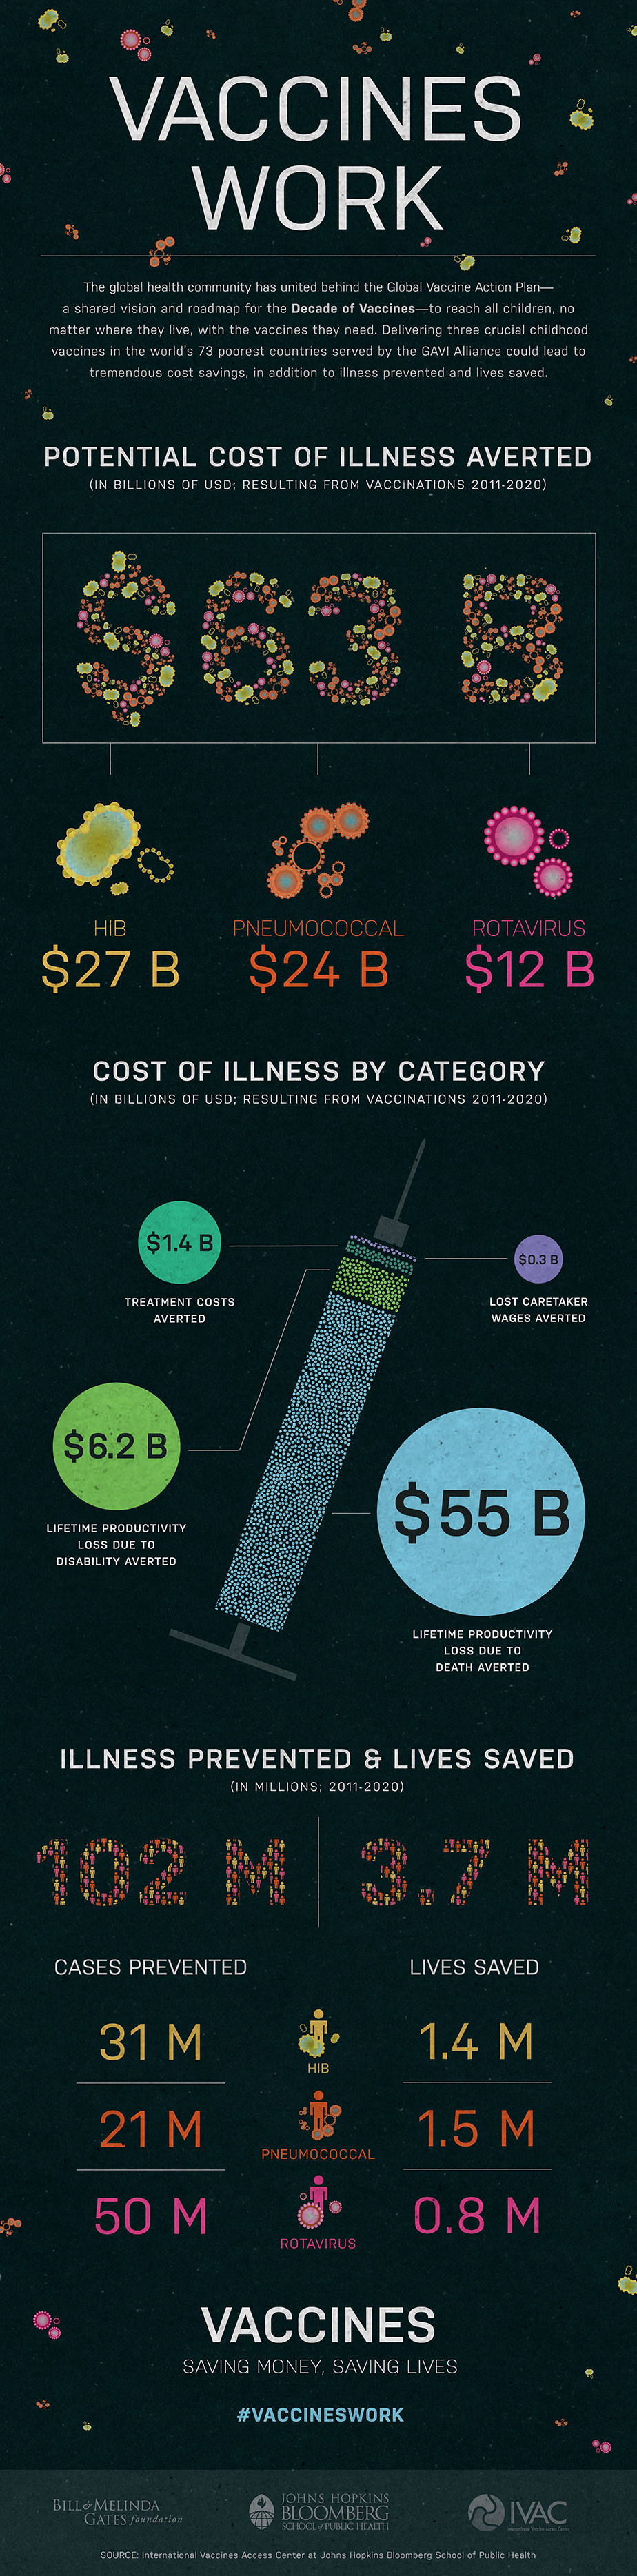 Cost Effectiveness Of Vaccines Infographic Ivac